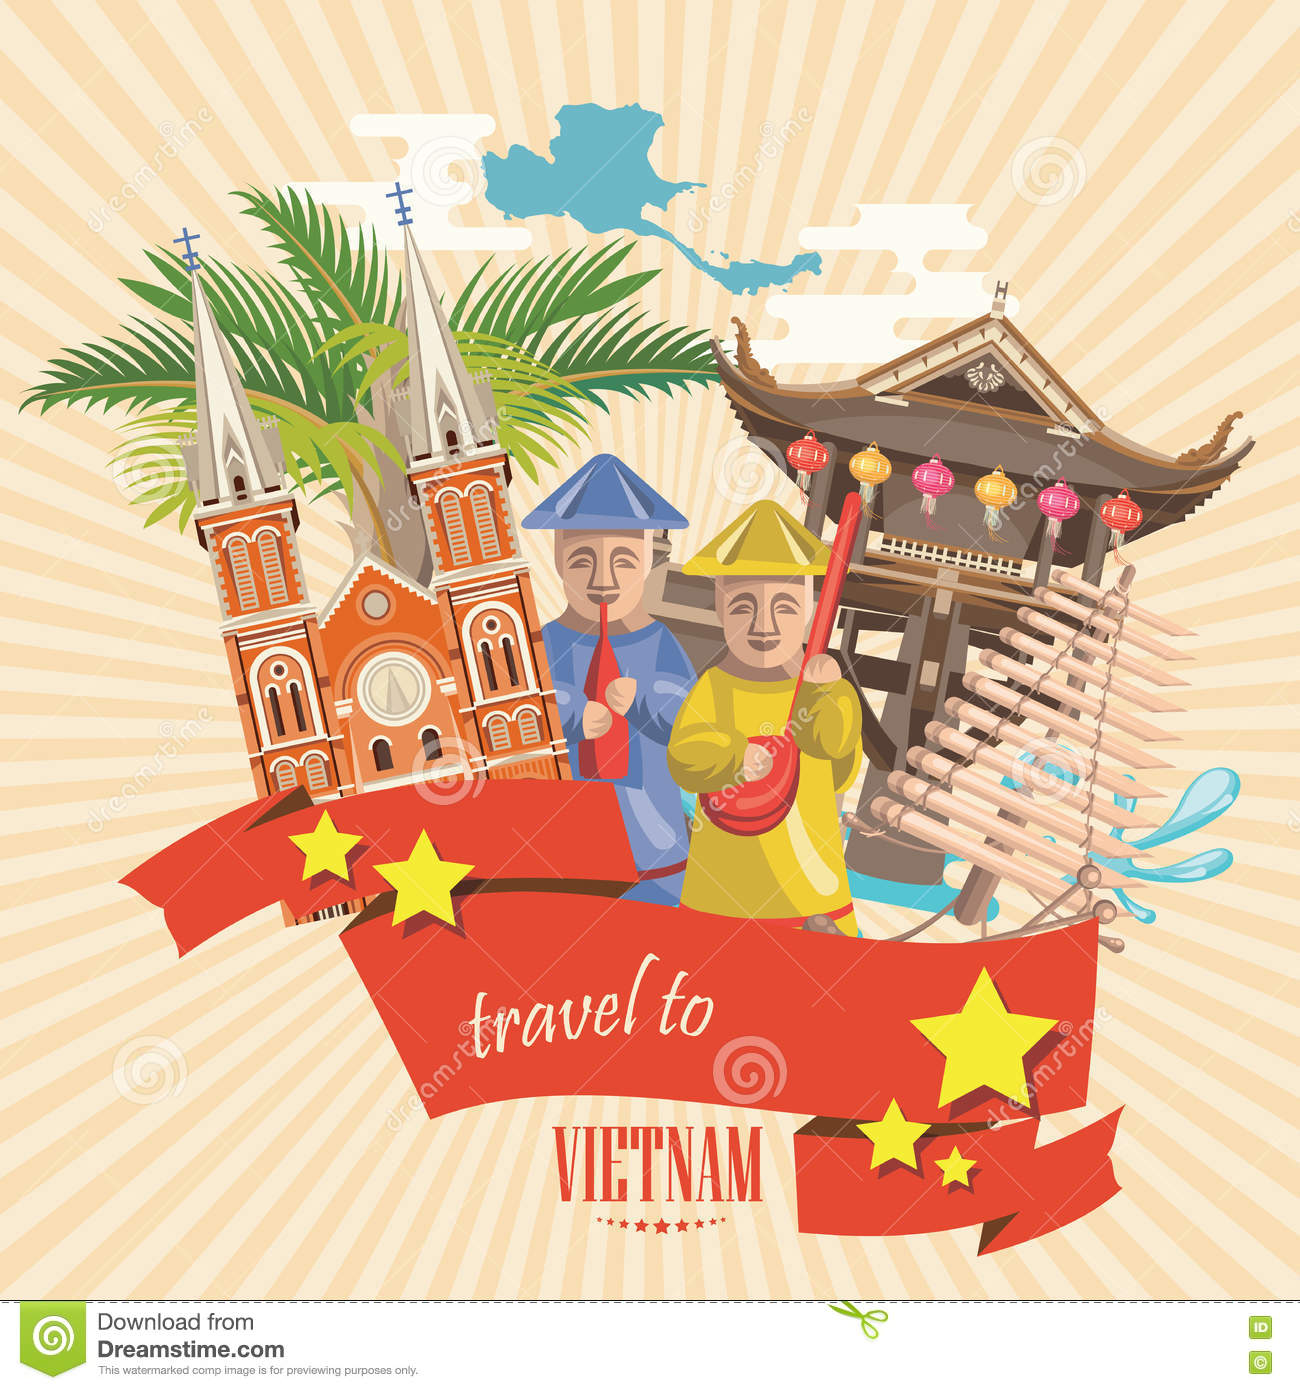 Travel to vietnam card with pagoda temple and yellow stars stock travel to vietnam card with pagoda temple and yellow stars m4hsunfo Choice Image